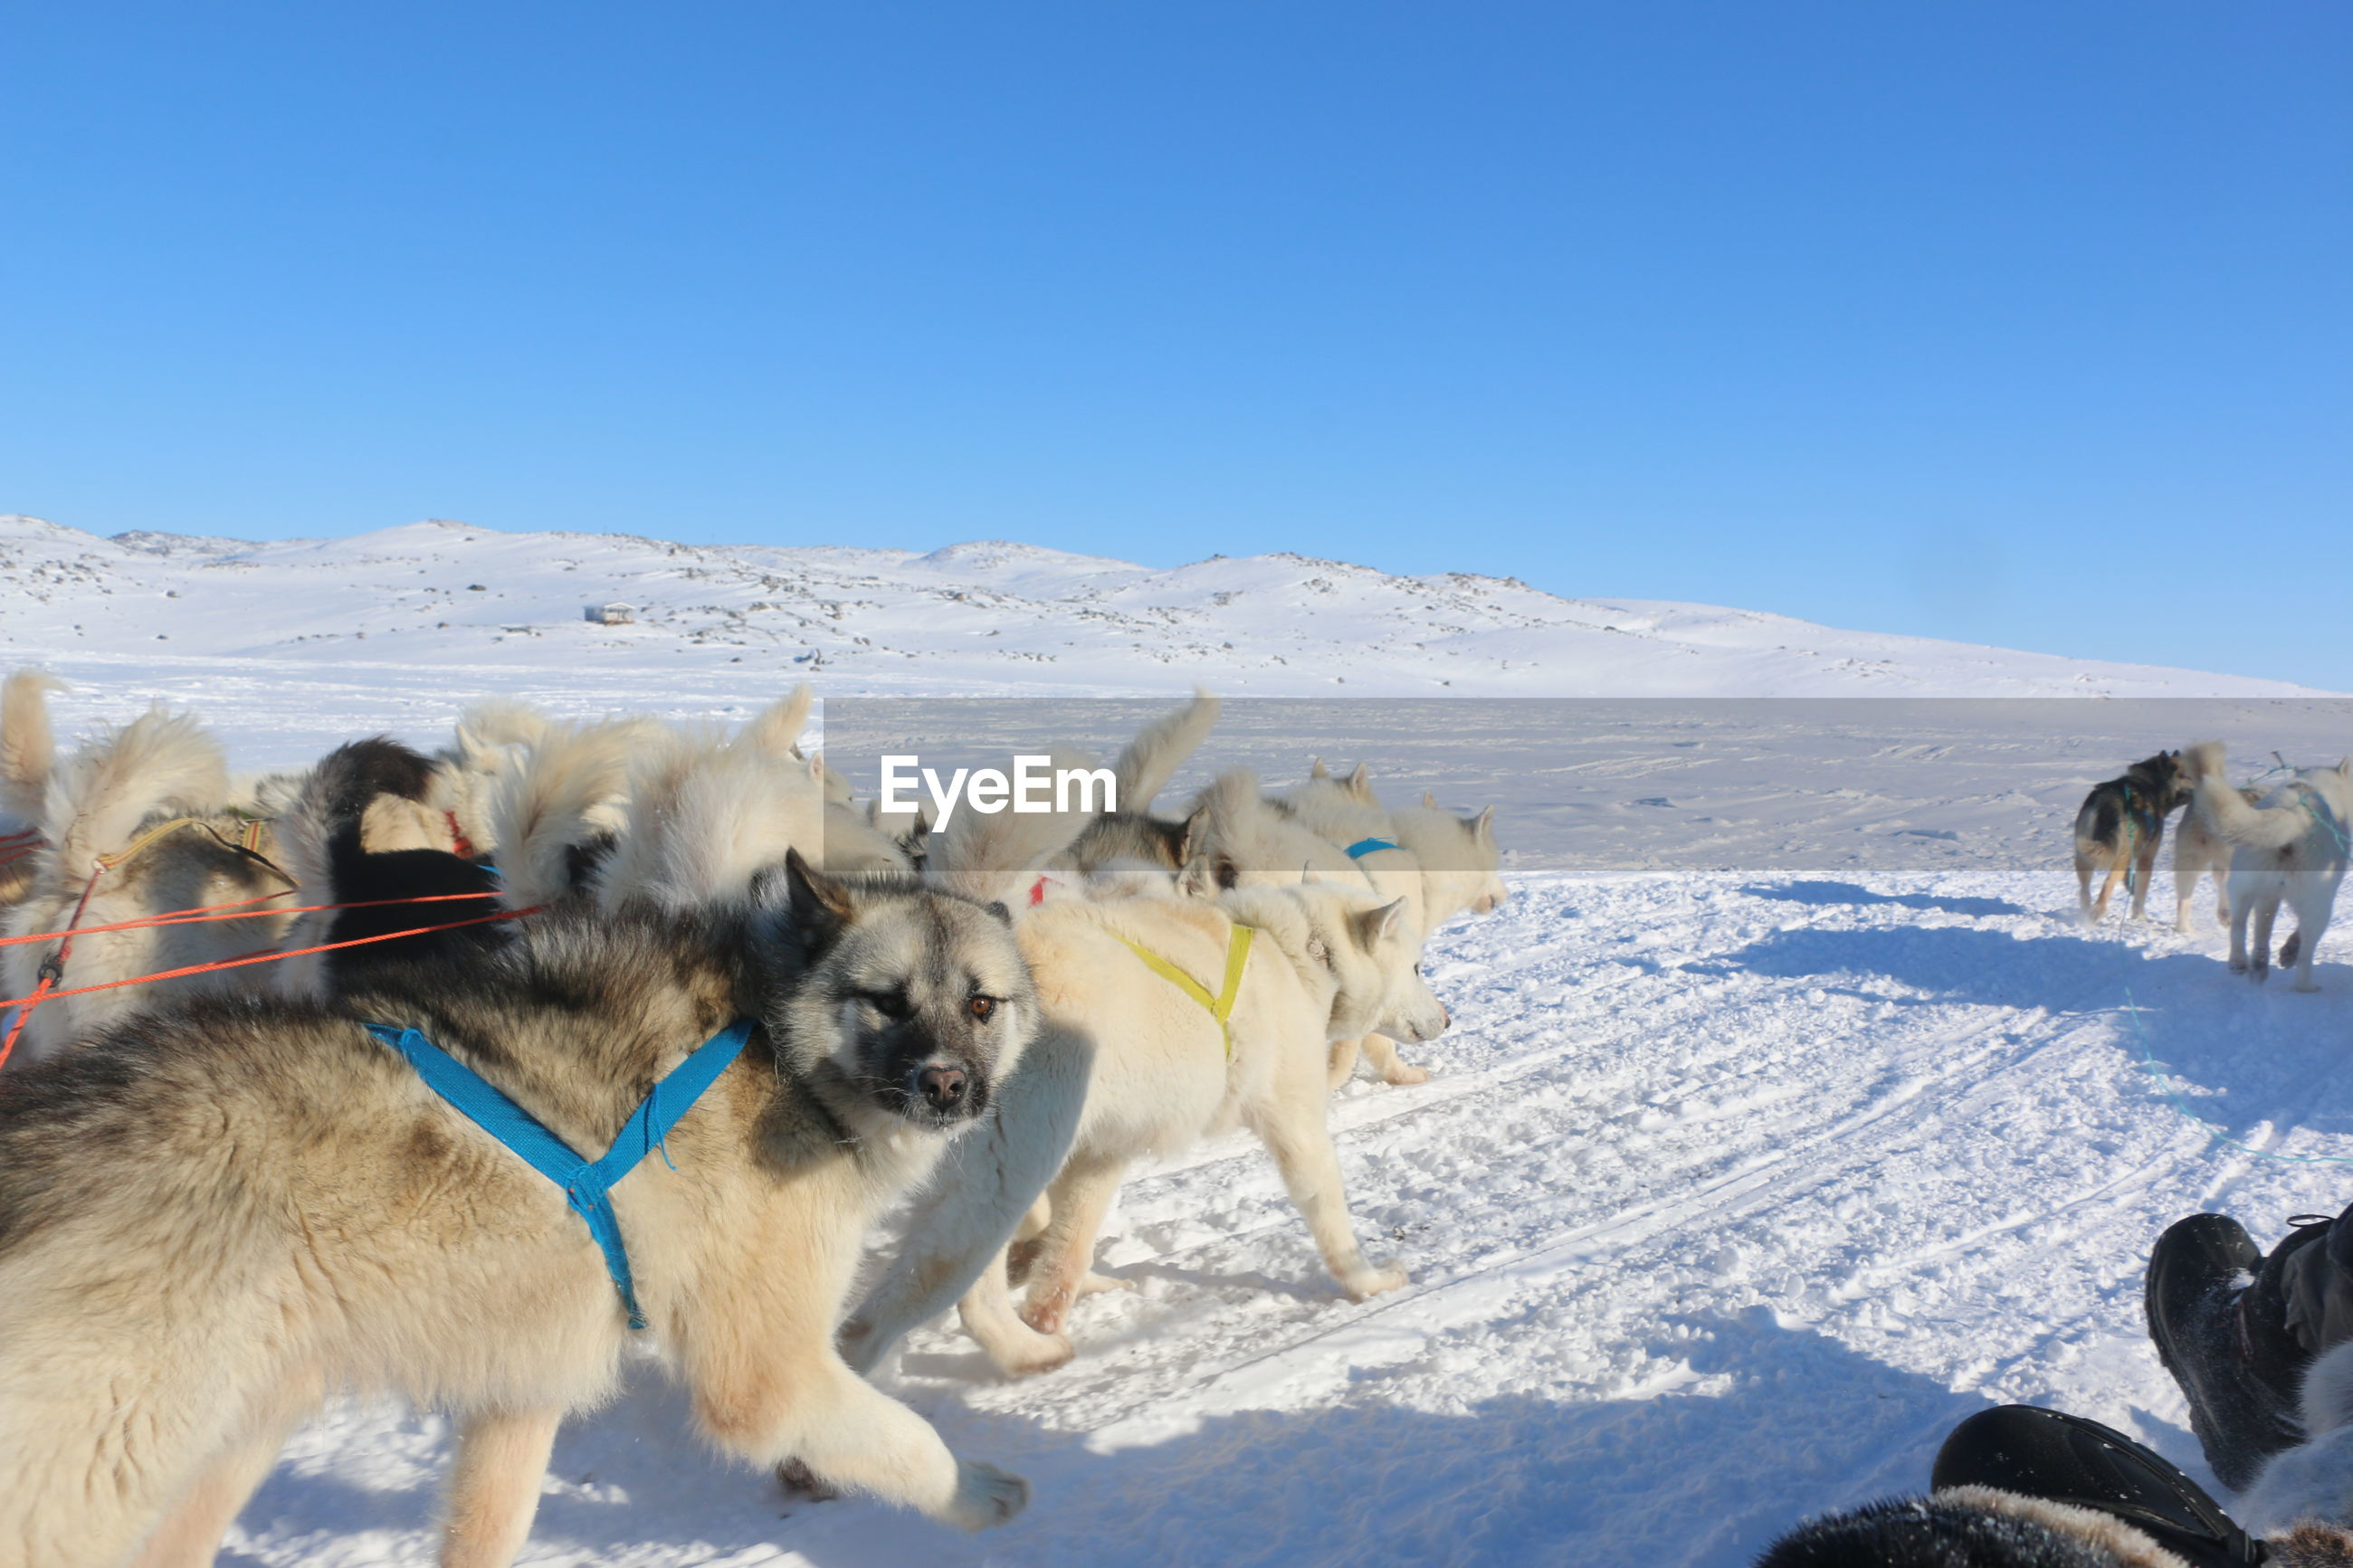 Huskies on snow covered landscape against clear sky